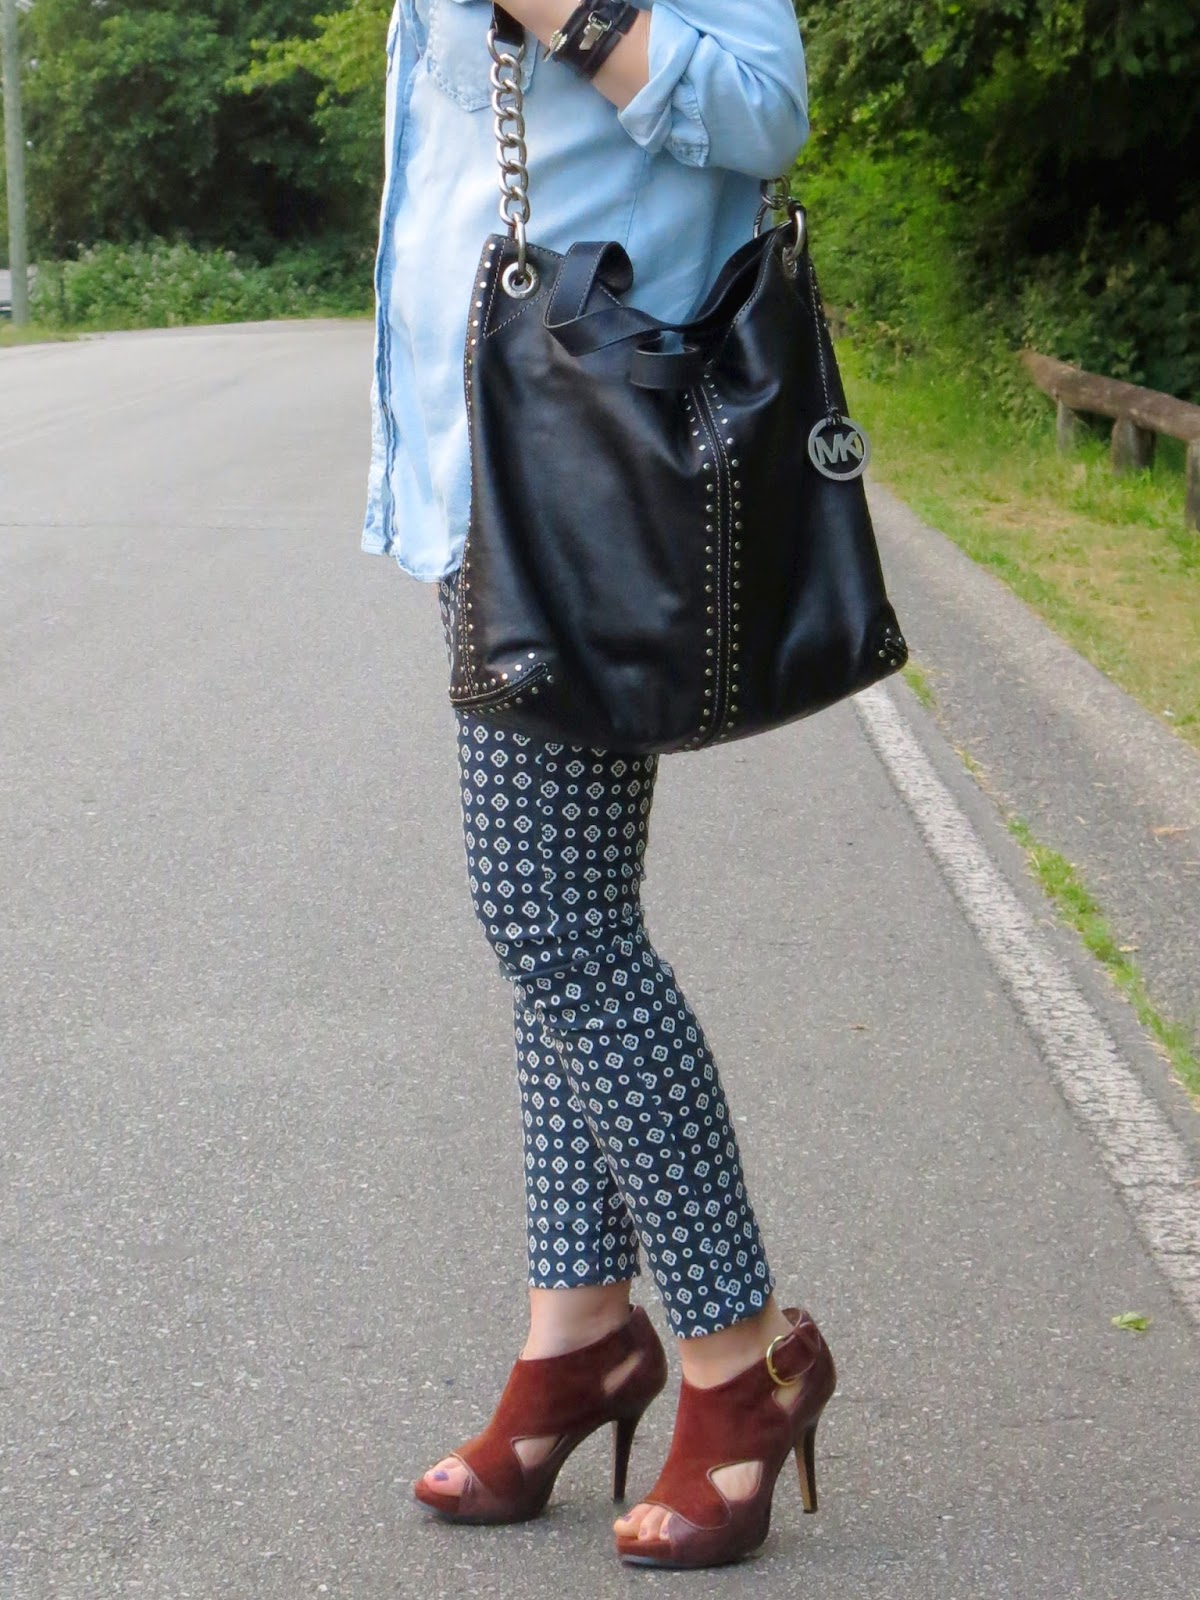 printed pants, chambray shirt, and Michael Kors bag